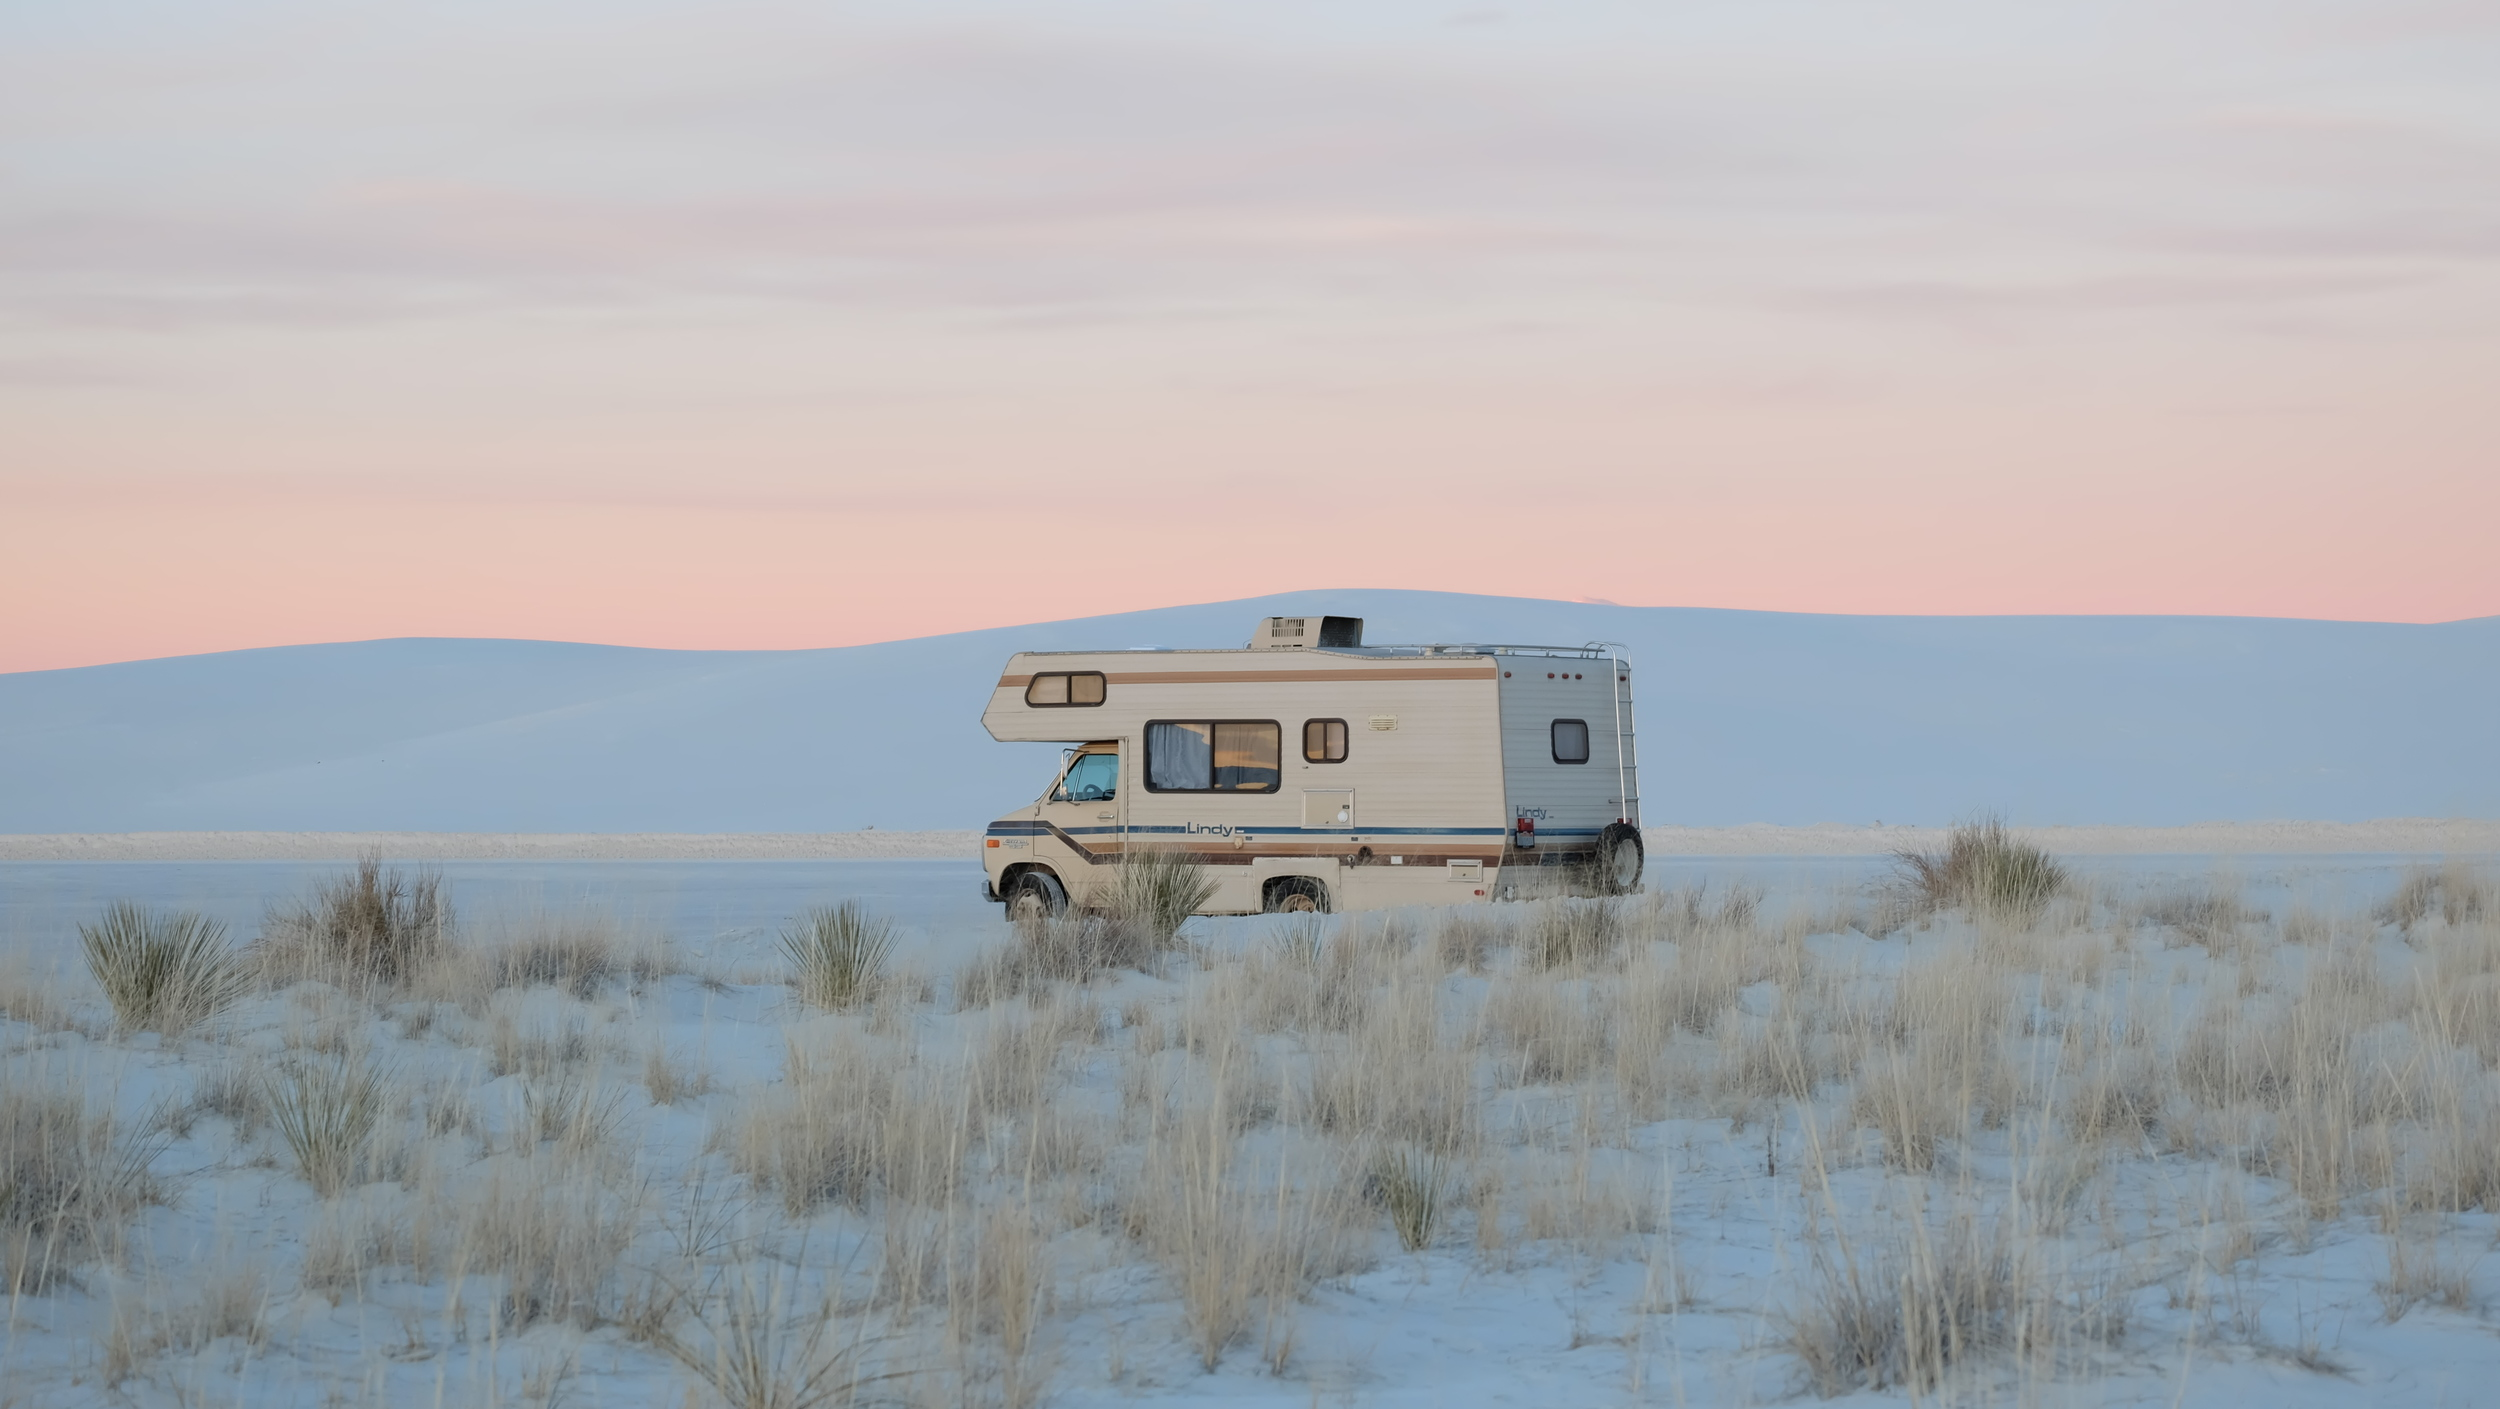 Lindy blending into the dunes in White Sands , New Mexico: Photo by Rachel Farabaugh.